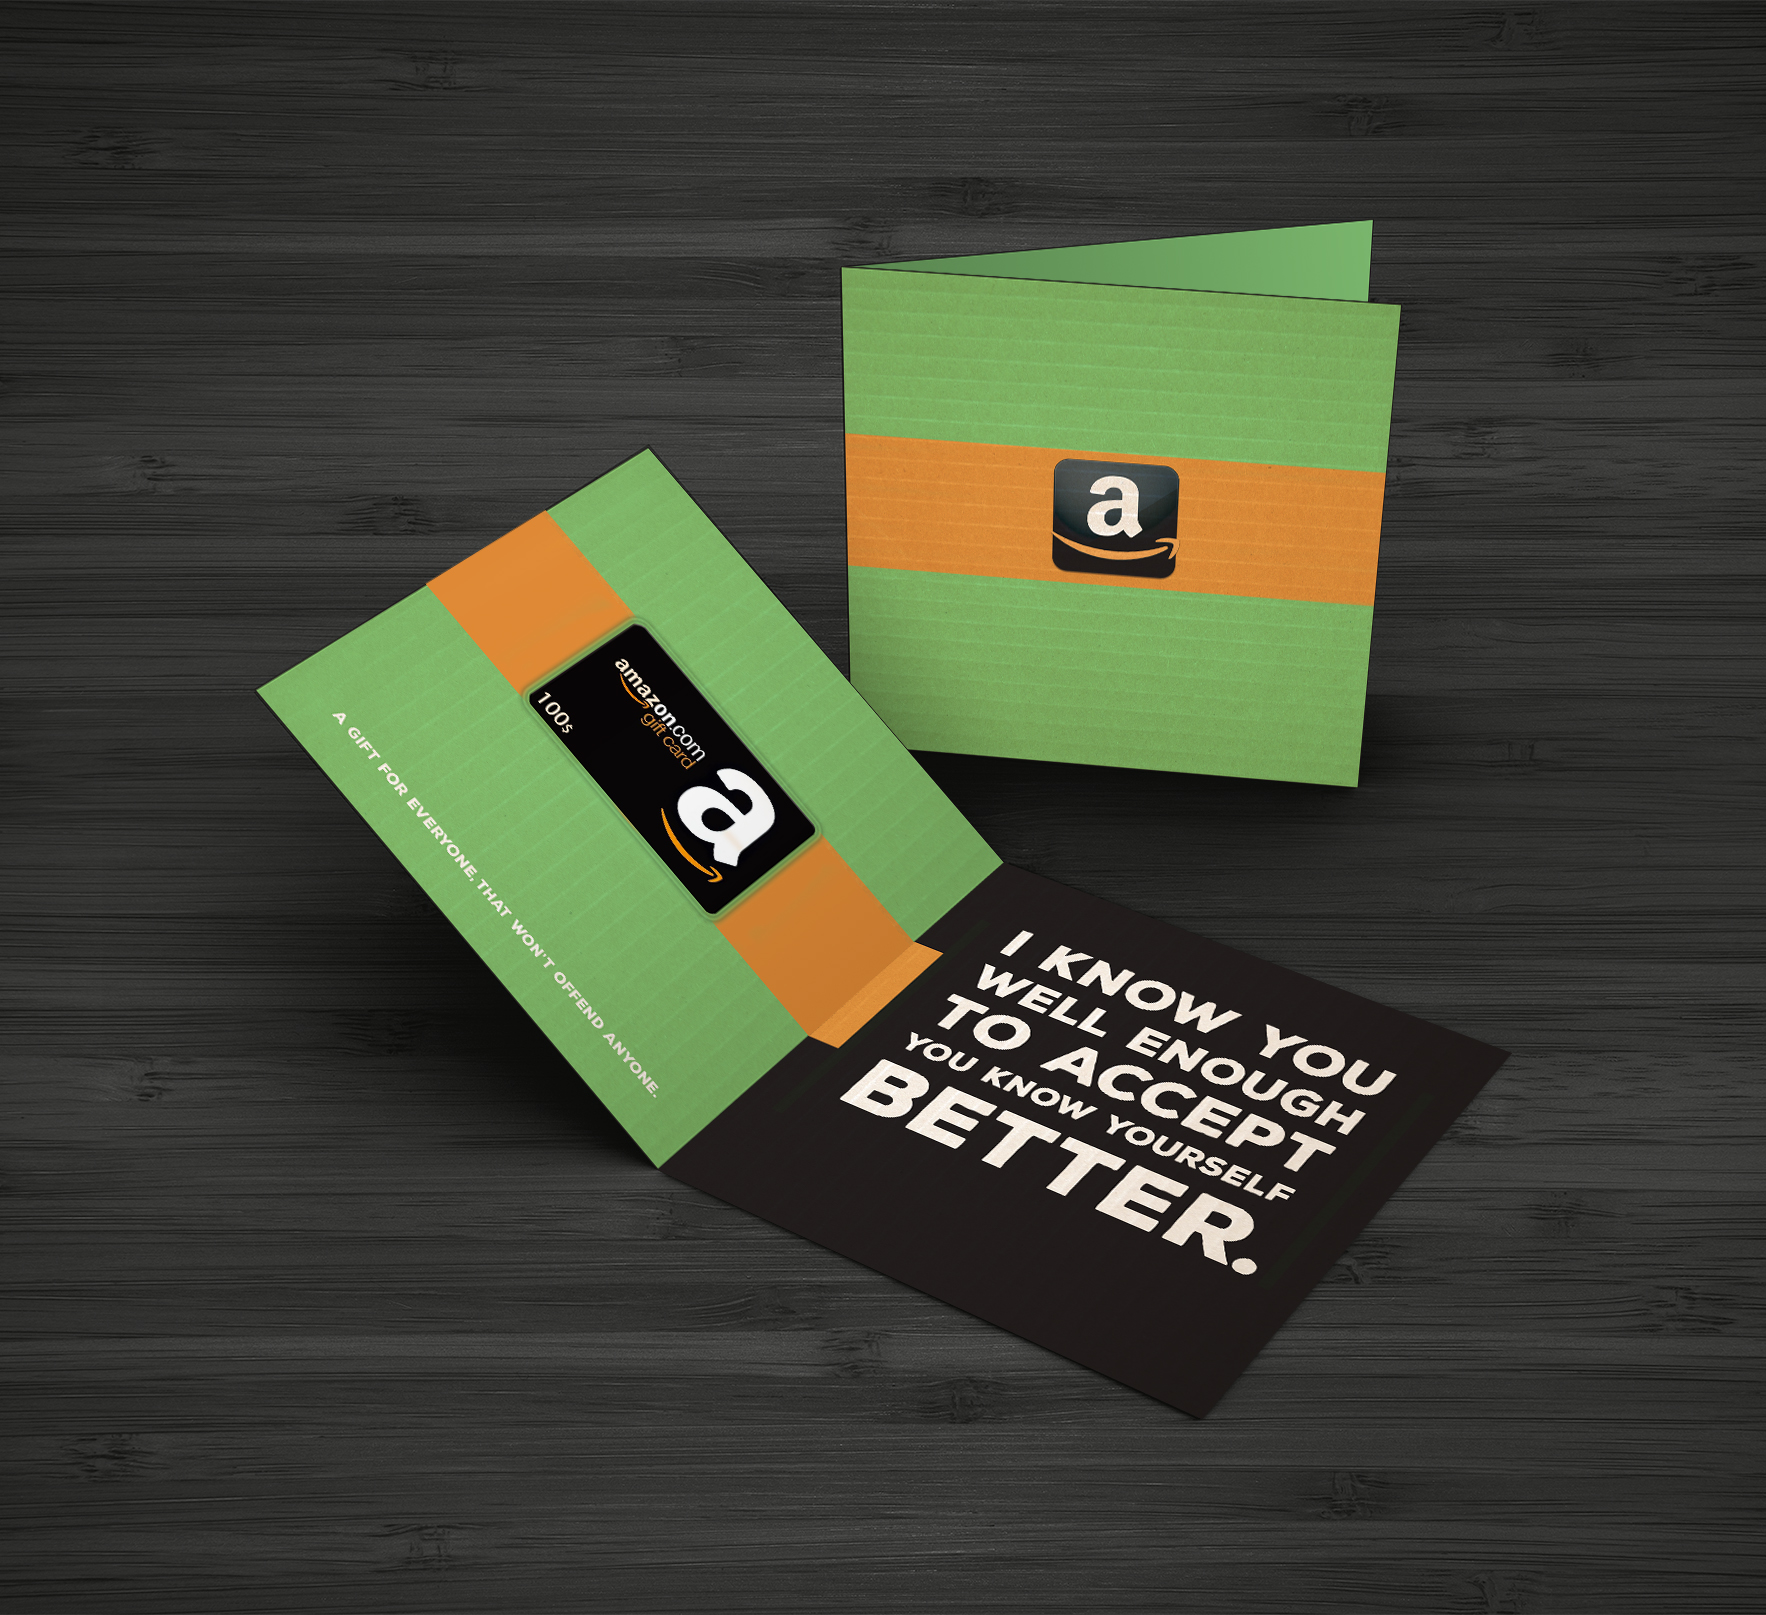 Amazon_Greetings Card Mockup_1.jpg